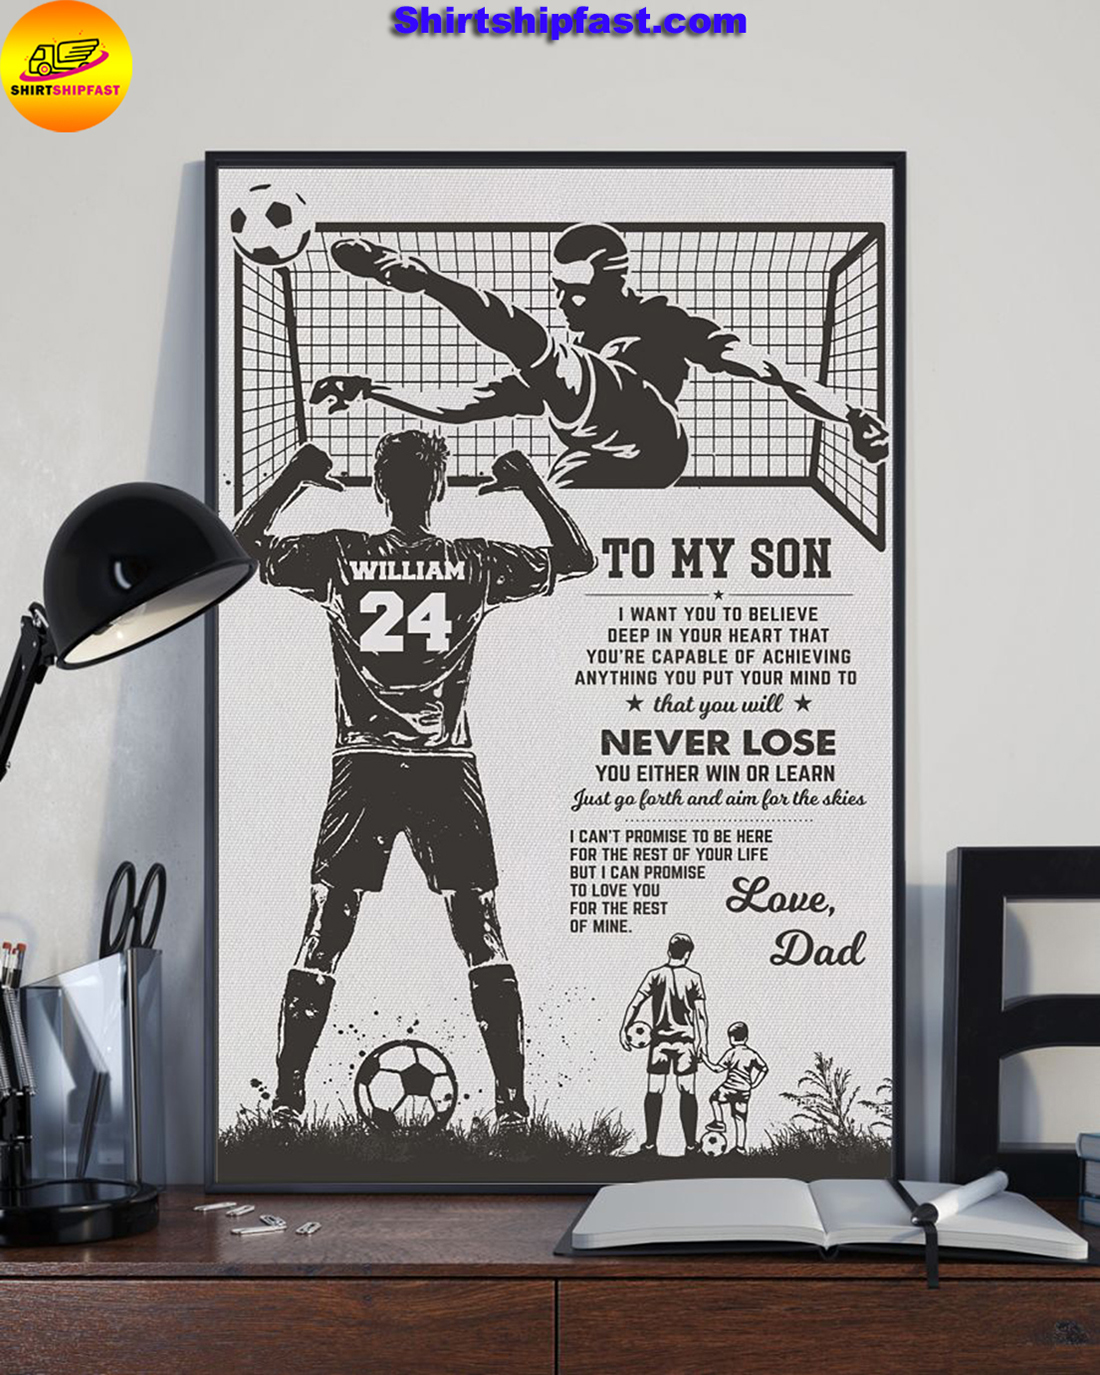 Personalized Soccer Dad To my son poster